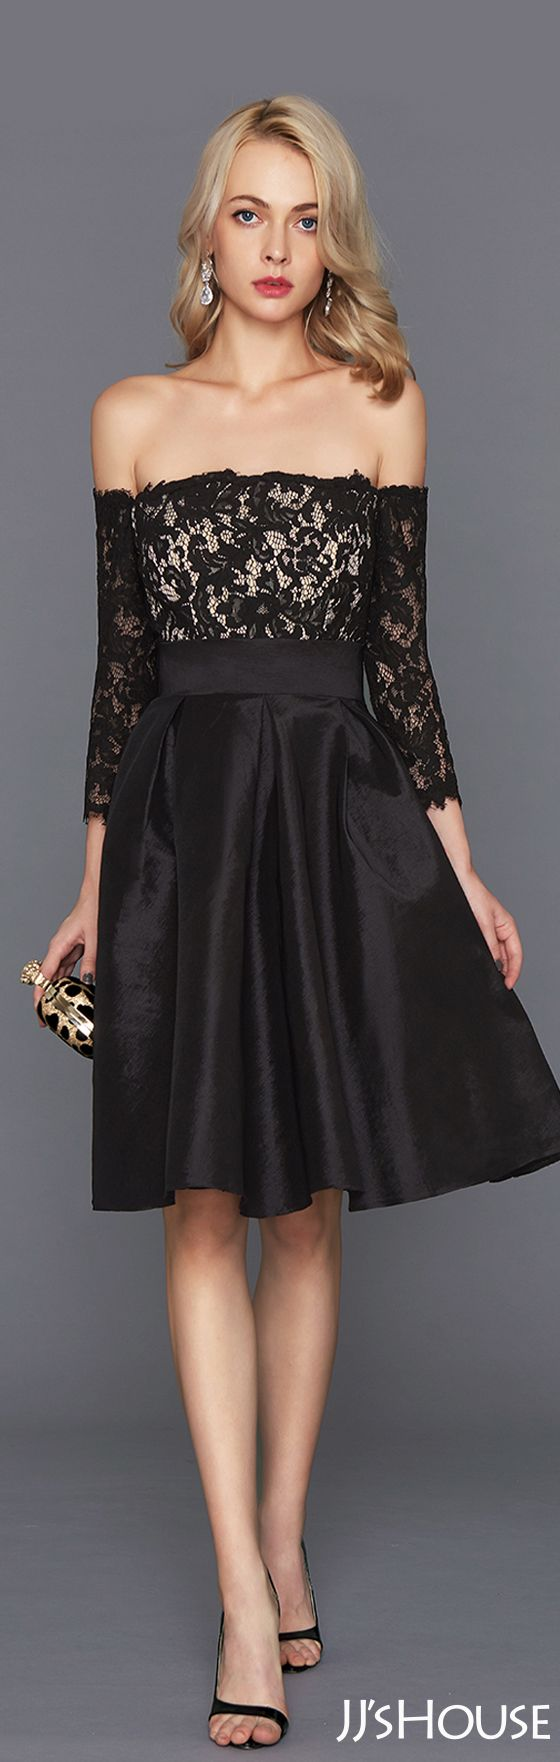 Black Cocktail Dresses with Bow